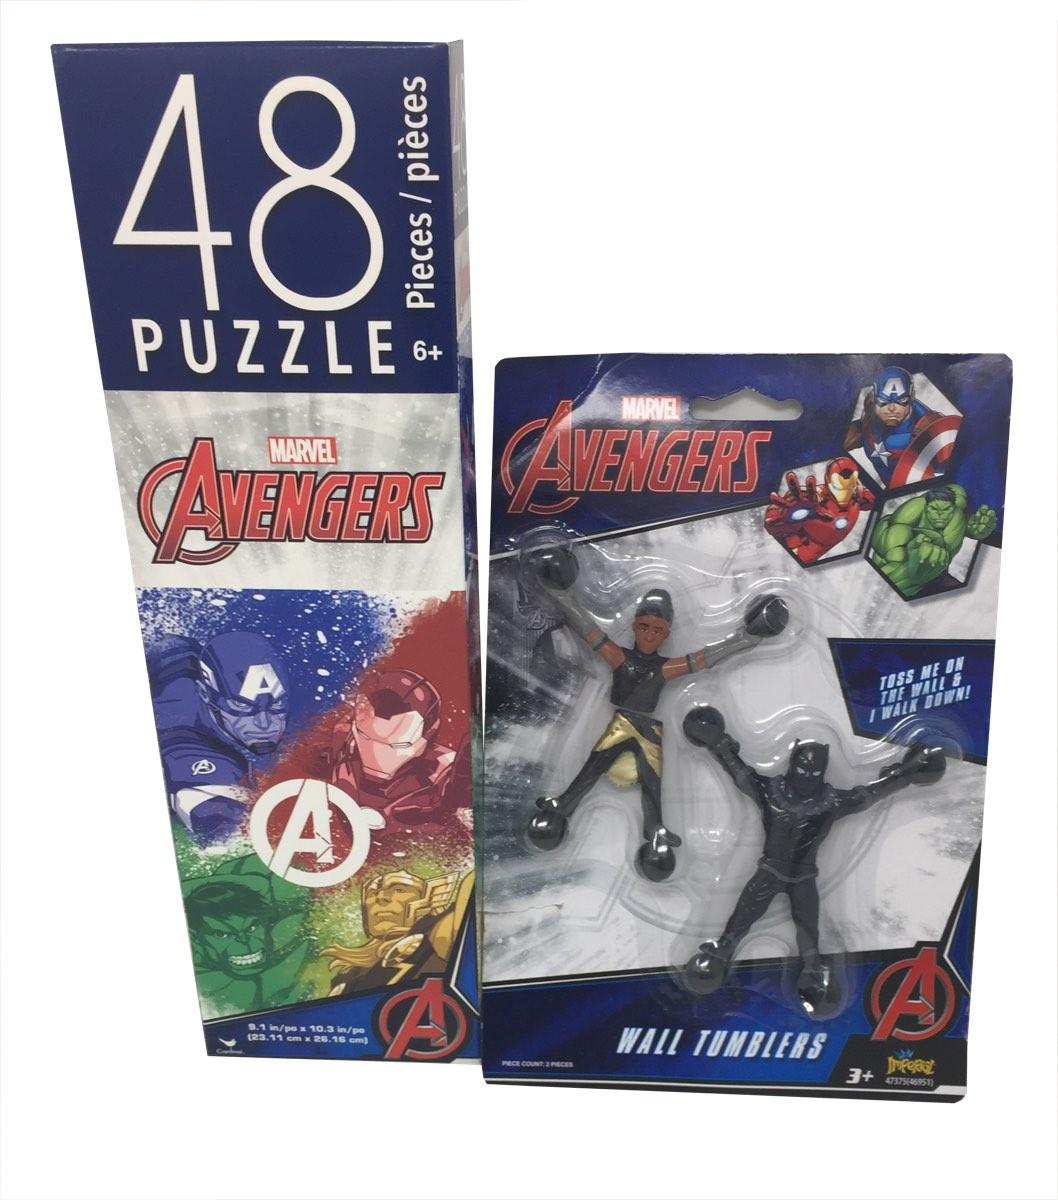 Marvel Avengers 48 Piece Puzzle and 2 Randomly Selected Marvel Wall Tumblers